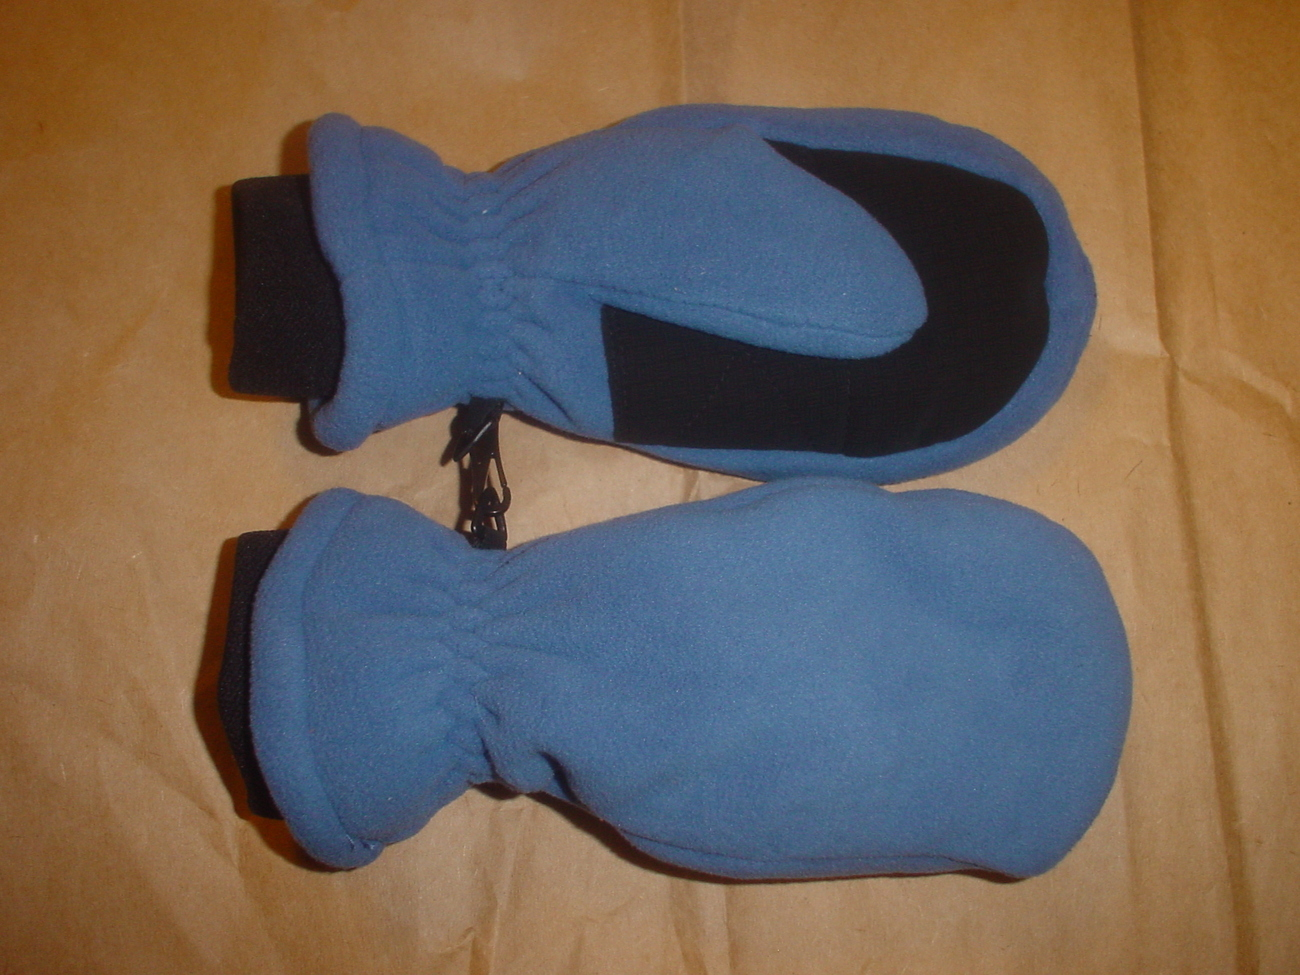 Land's End Fleece Mittens Medium Dark Blue